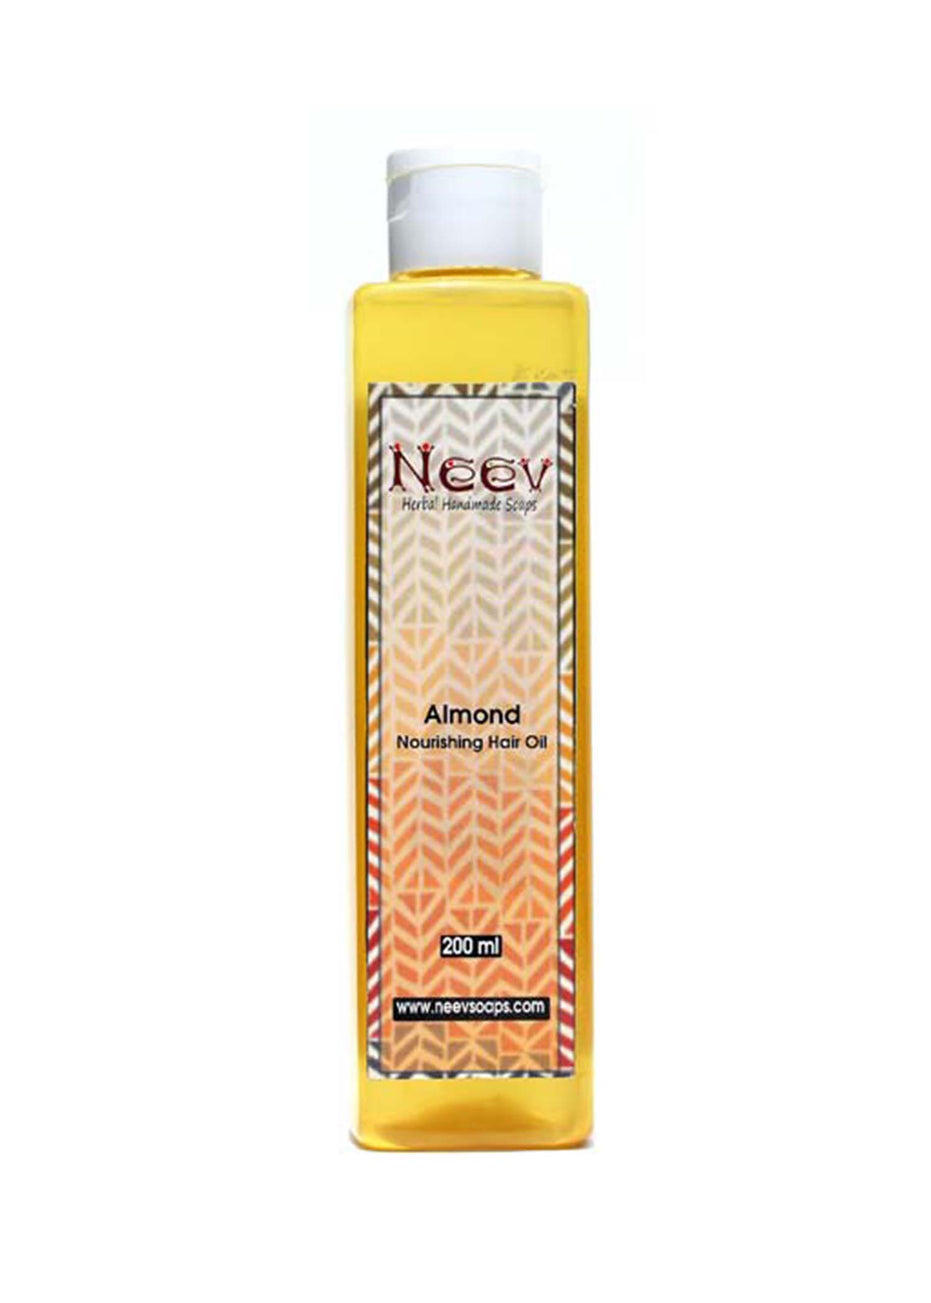 Neev Almond Nourishing Hair Oil, Hair Oil, Neev Herbal Handmade Soaps, ihaat, [made_in_india], [handmade] - ihaat